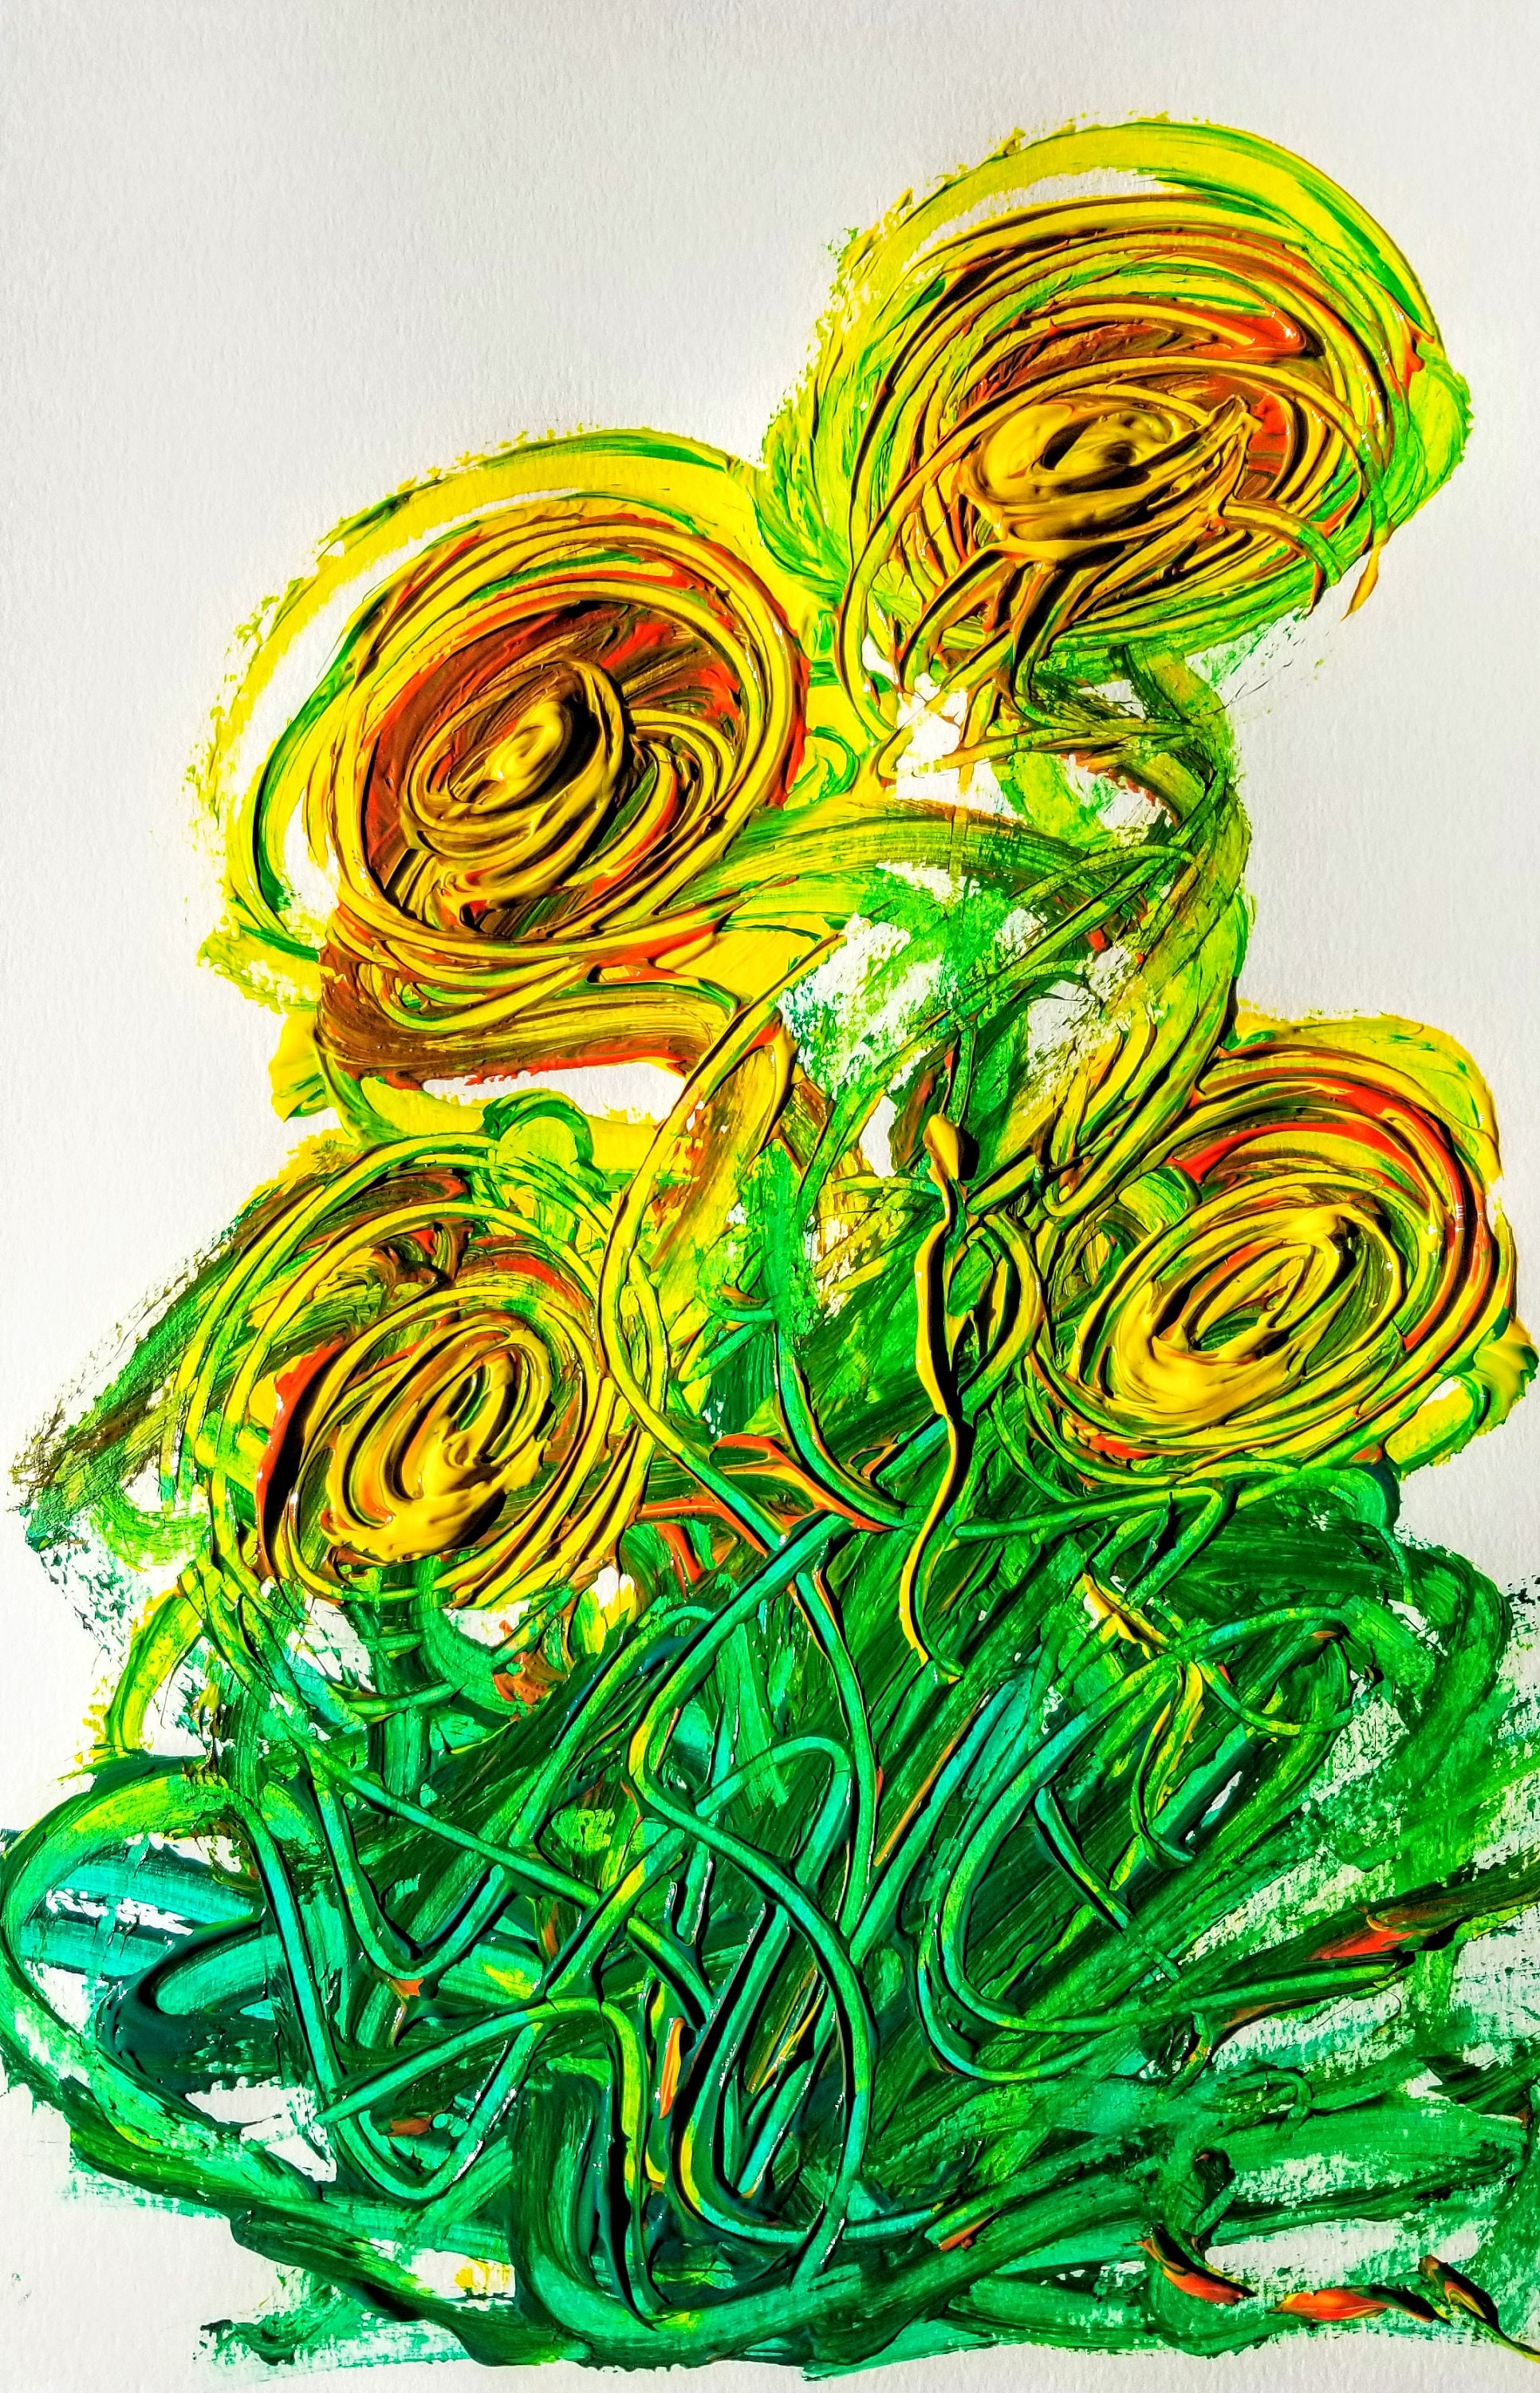 Cactus Flowers - Art, Abstract, Paintings, Color Art, Art Gallery ...